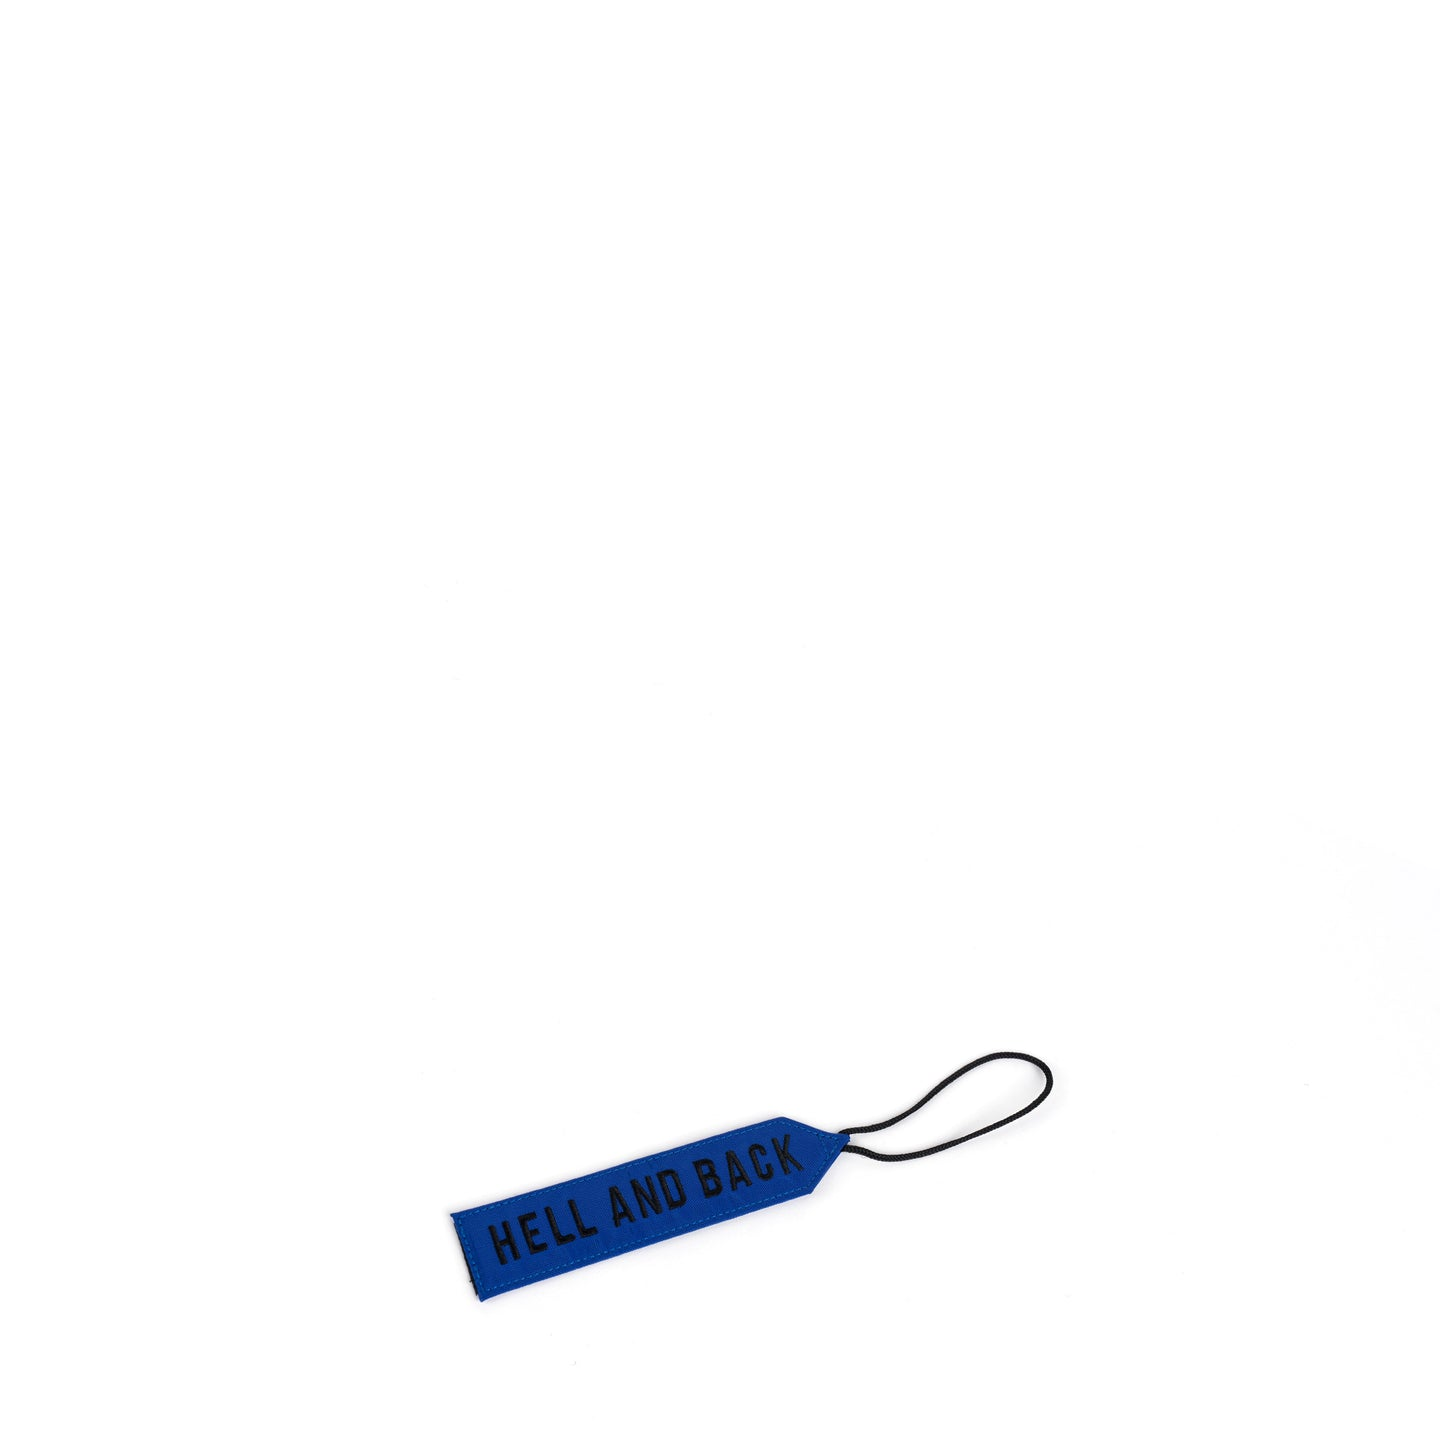 LUGGAGE TAG (BLUE) - Bravo Company - A specialty travel and photography driven back pack company. visit www.bravocoworldwide.com for the foxtrot, axis, delta, kilo, and more.